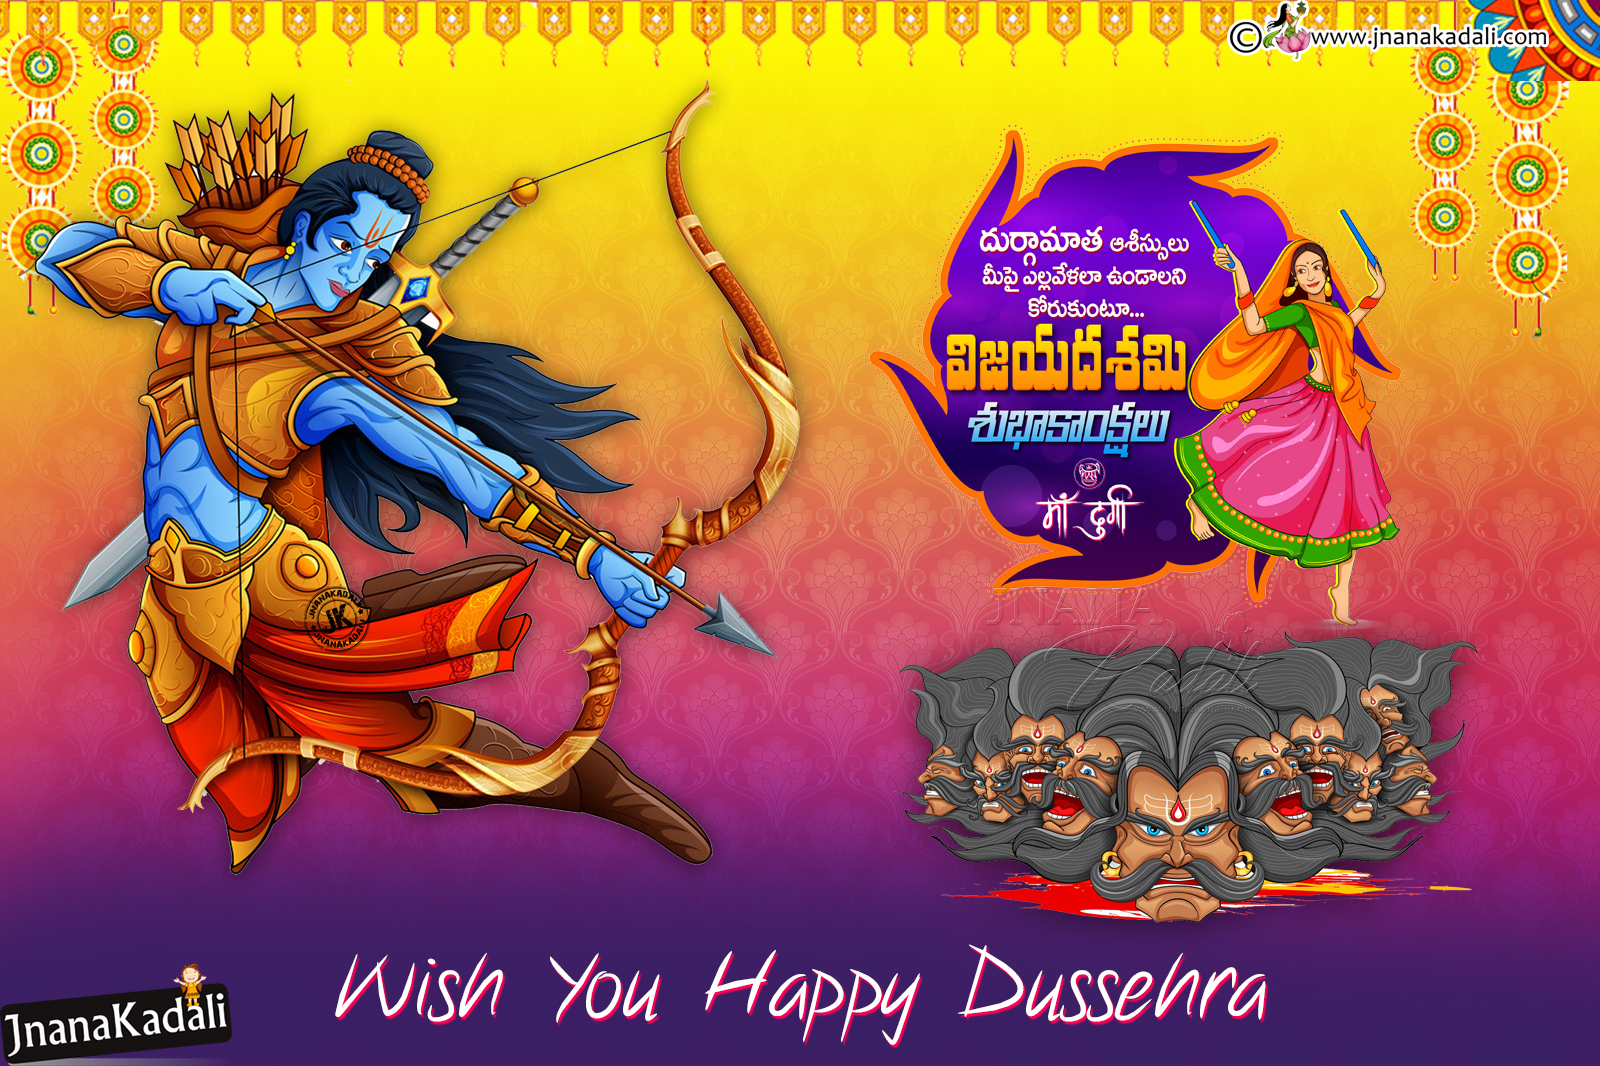 dussehra vijayadasami greetings in telugu 2019 telugu vijayadasami dussehra festival hd wallpapers brainysms dussehra vijayadasami greetings in